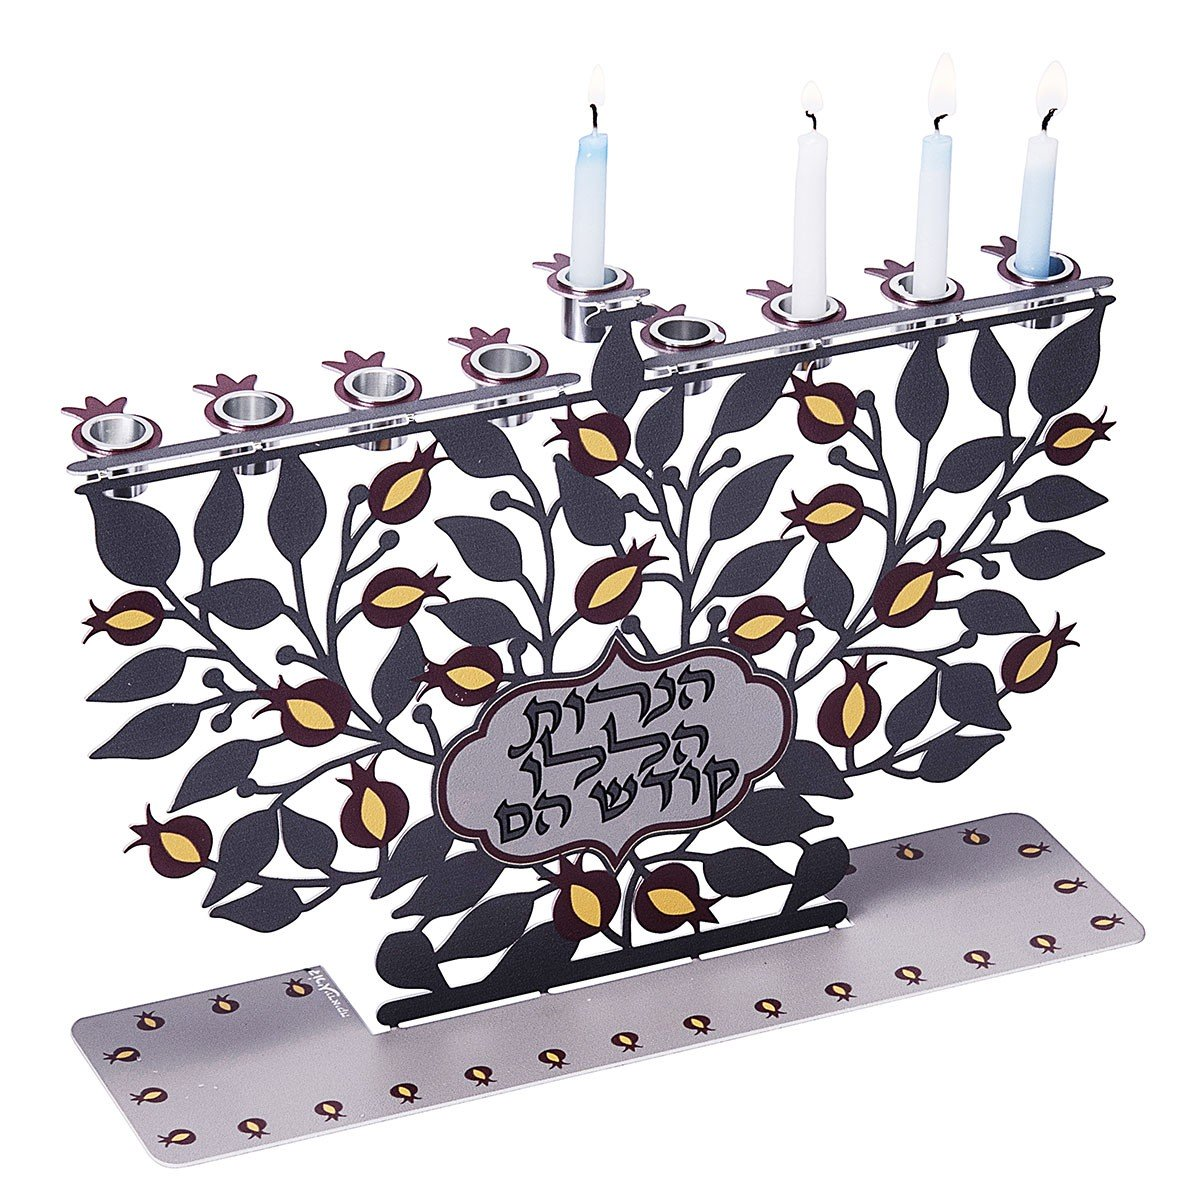 Dorit Judaica Metal Hanukkah Menorah with Laser-Cut Pomegranate Design